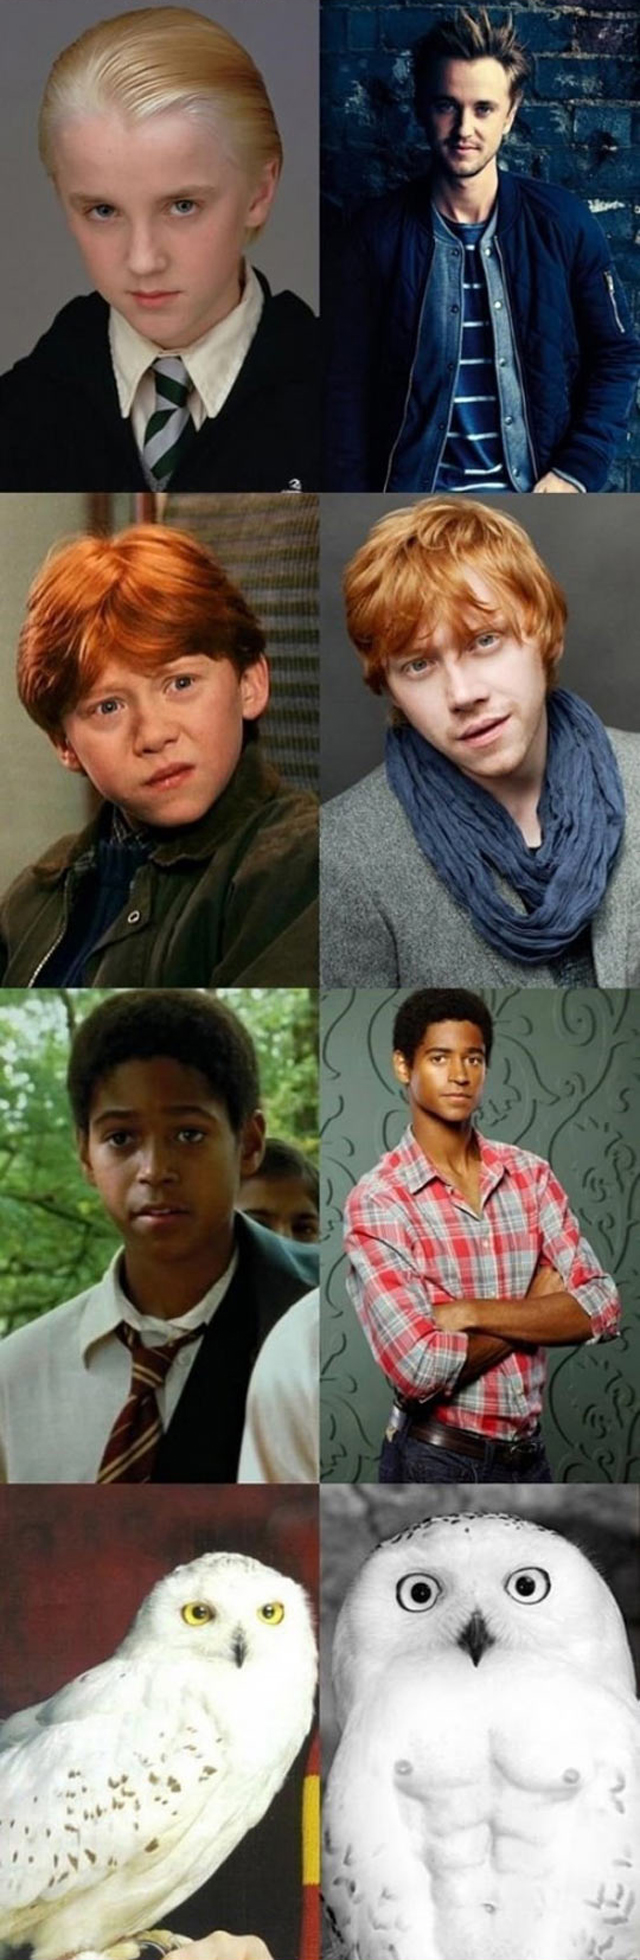 The Cast Of Harry Potter - Then And Now